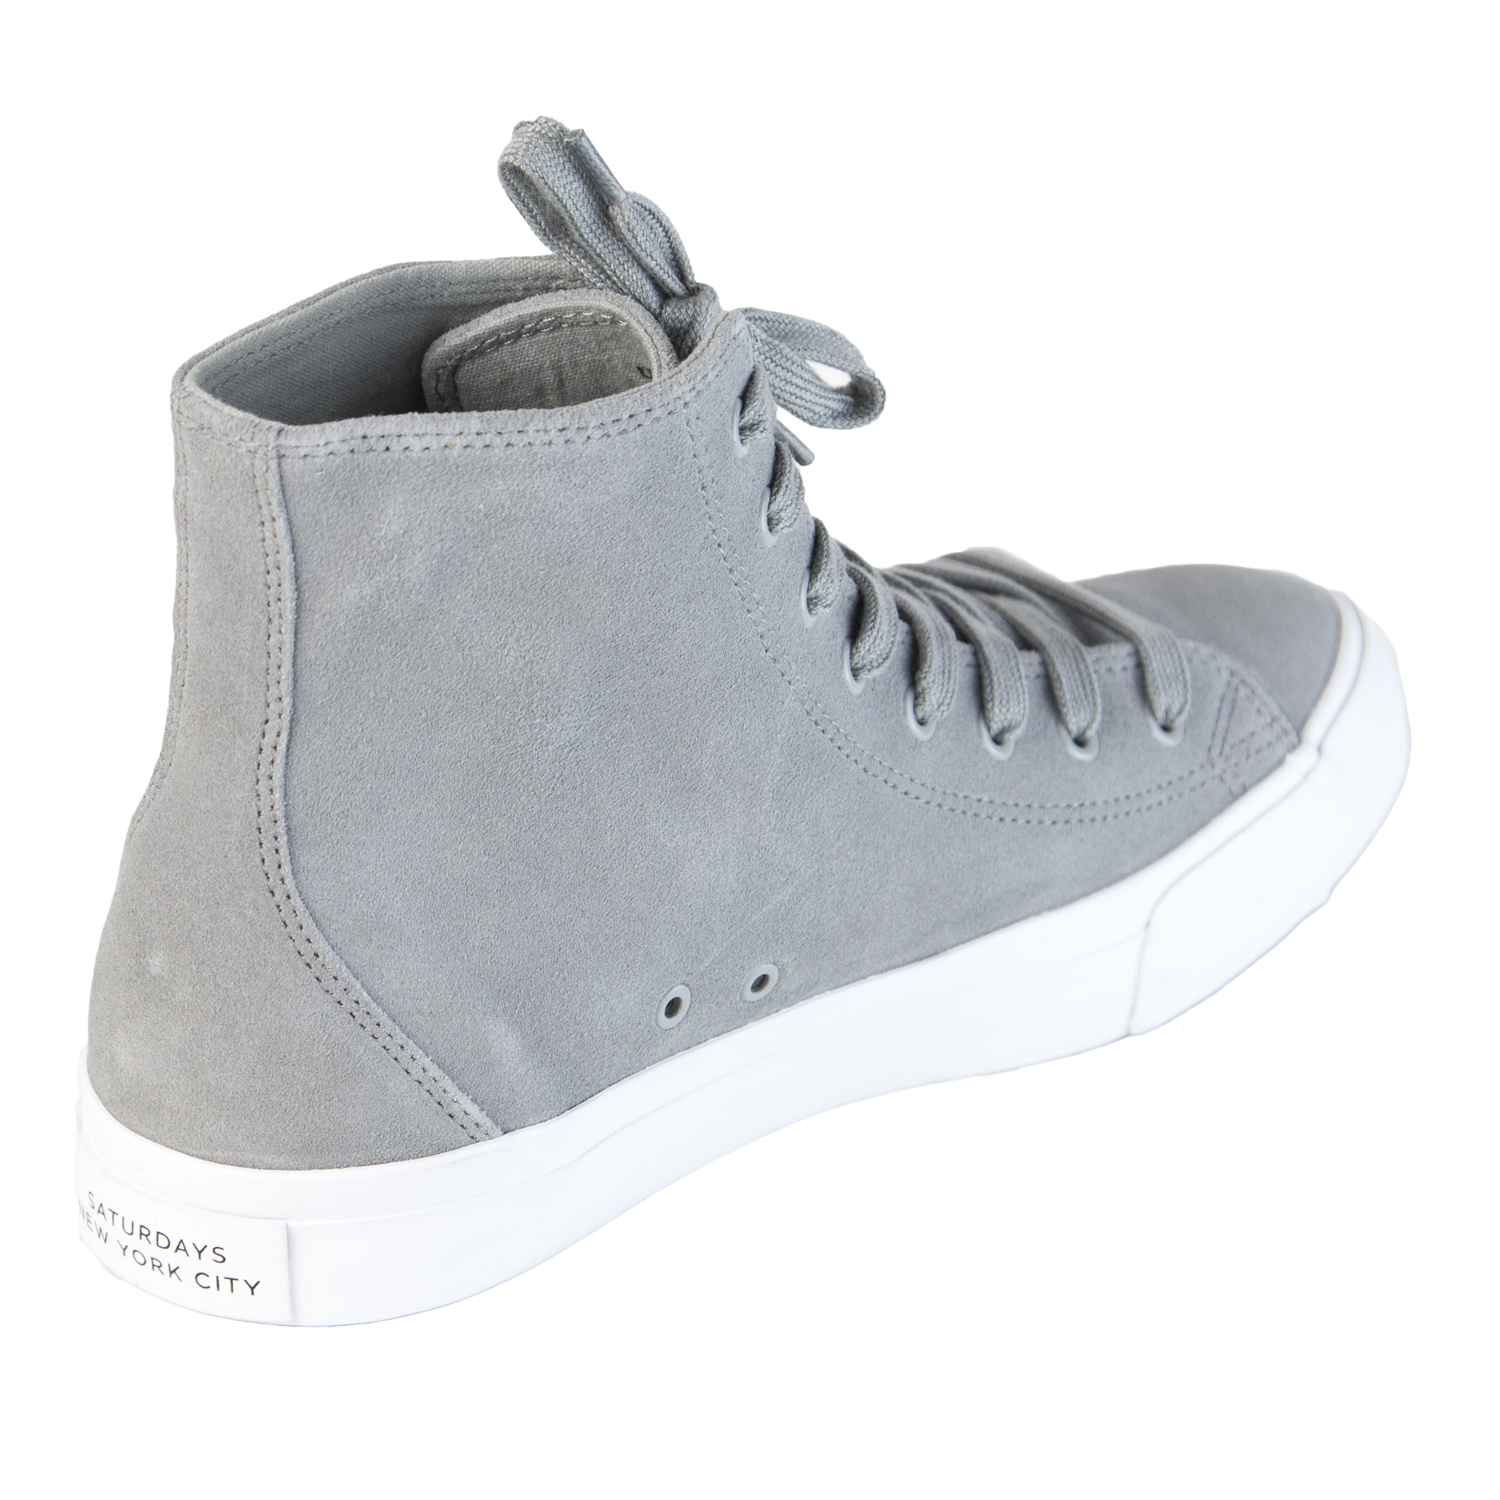 2adccd6e33a Details about SATURDAYS NYC Men's Slate Mike Suede High Top Sneaker 315MIKE  $225 NEW